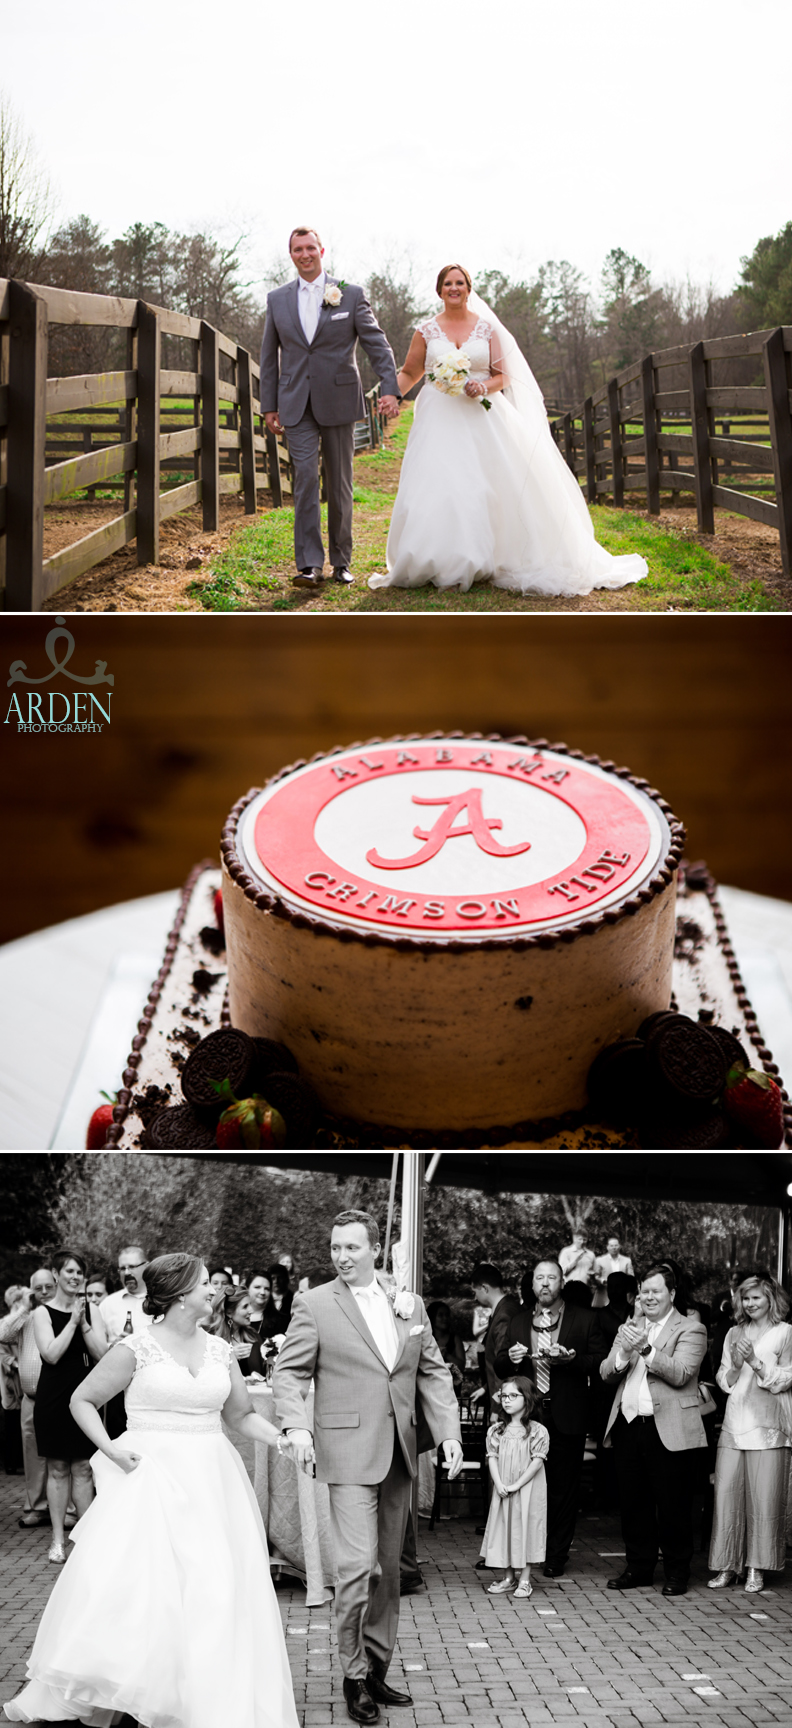 Roll Tide and let's eat cake!